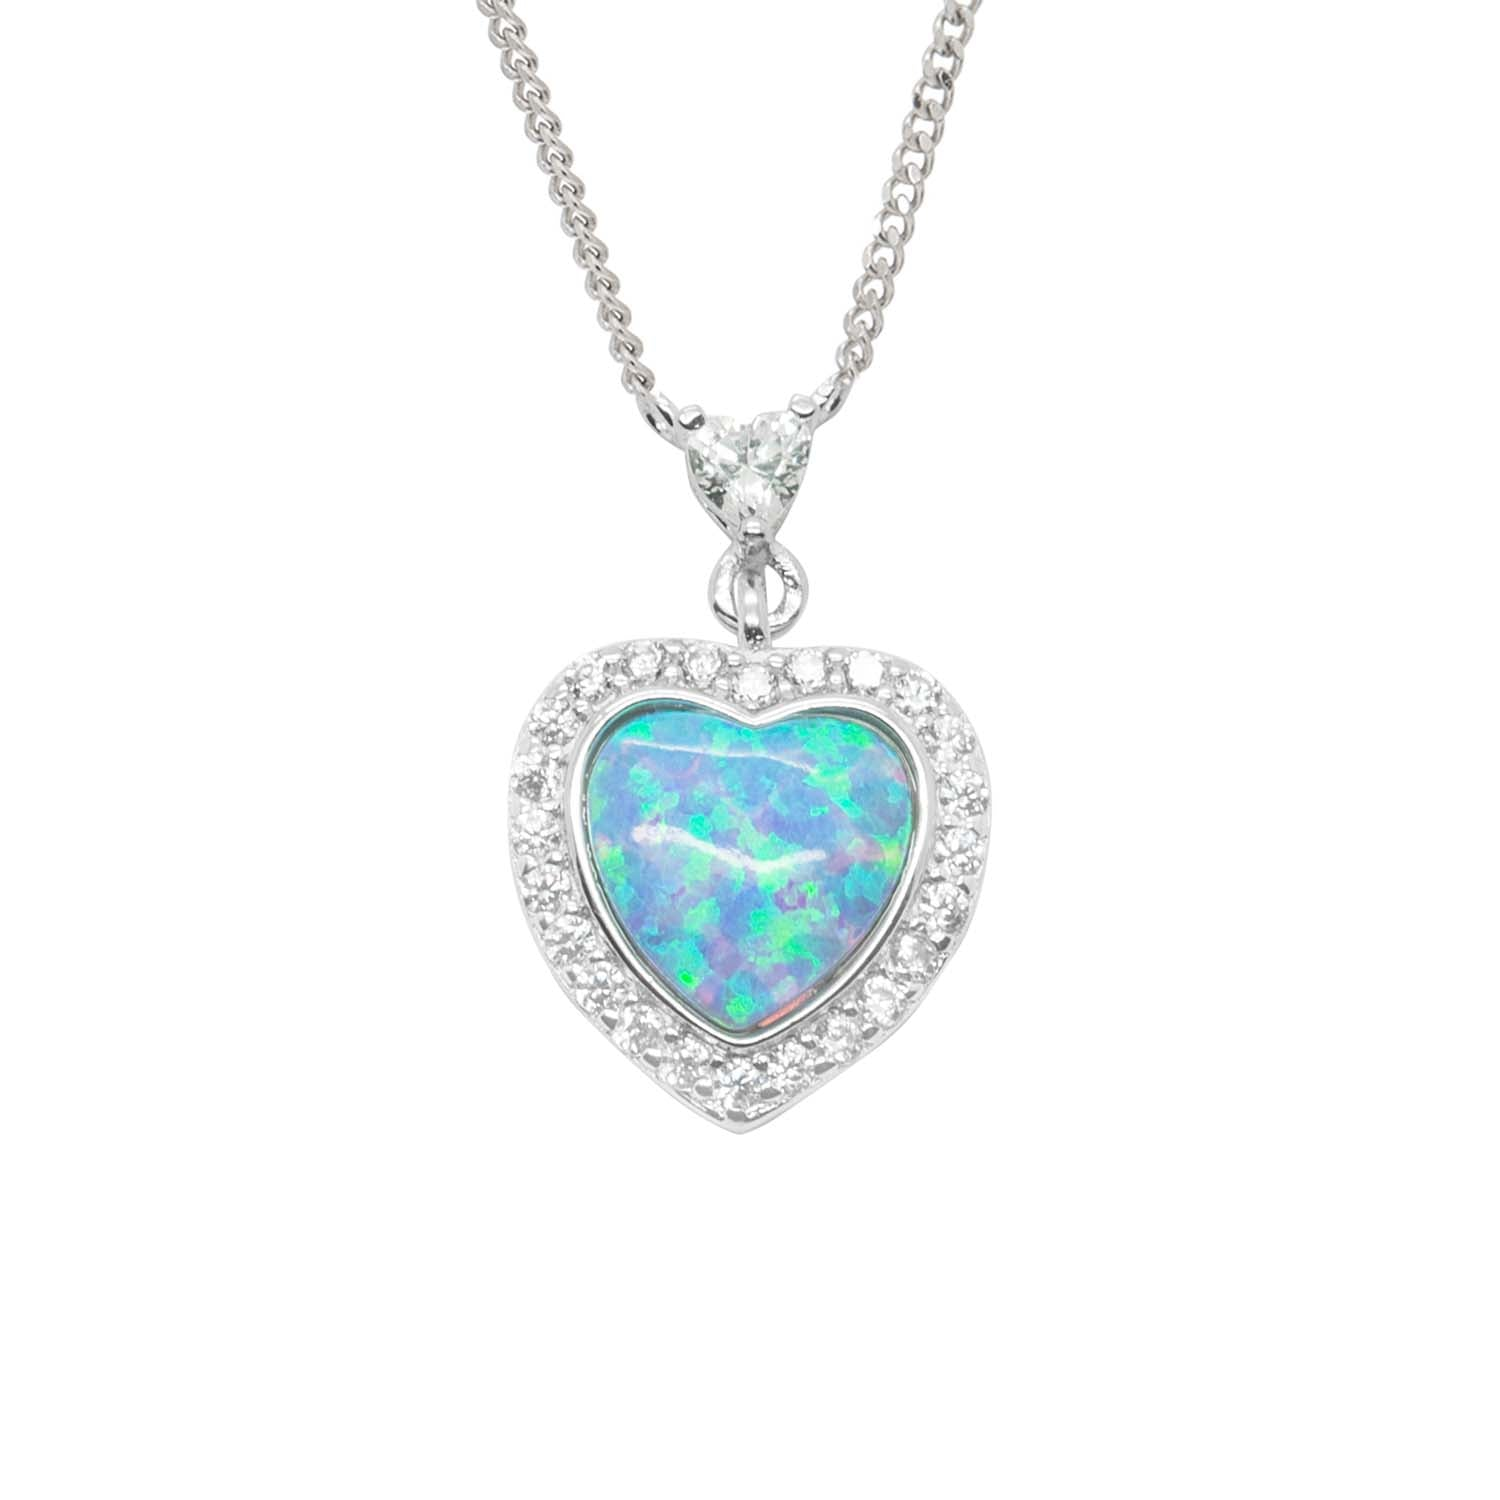 Royal heart pendant